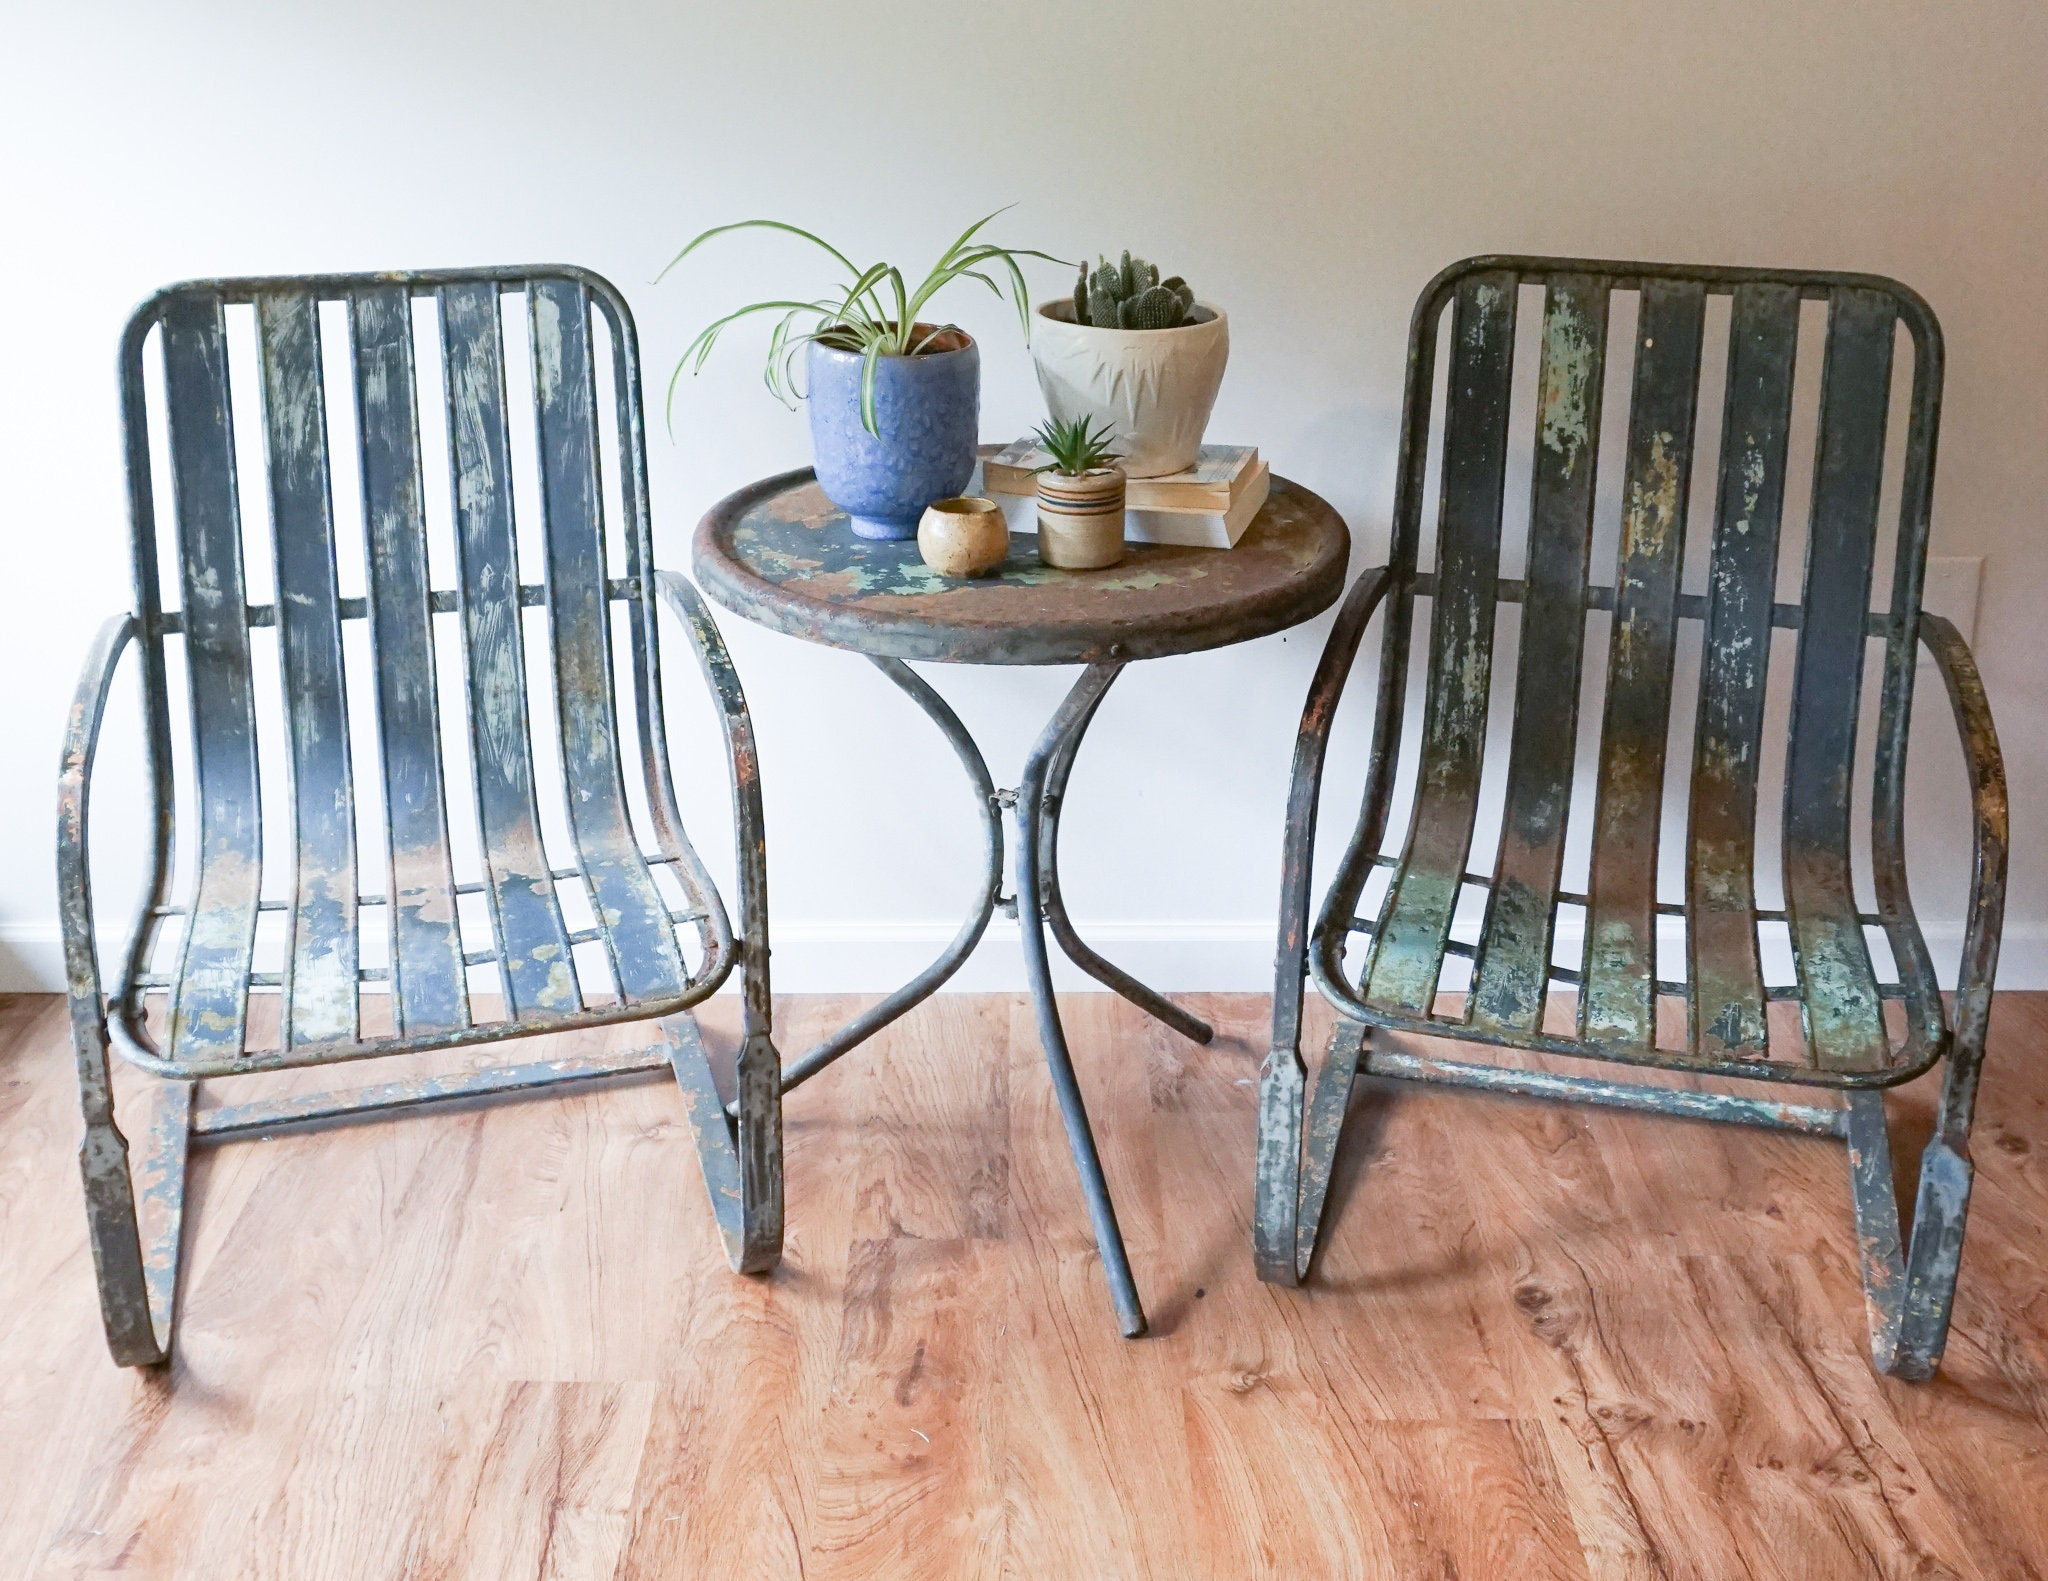 Set of 2 Industrial Weathered Metal Patio Lounge Chairs ...